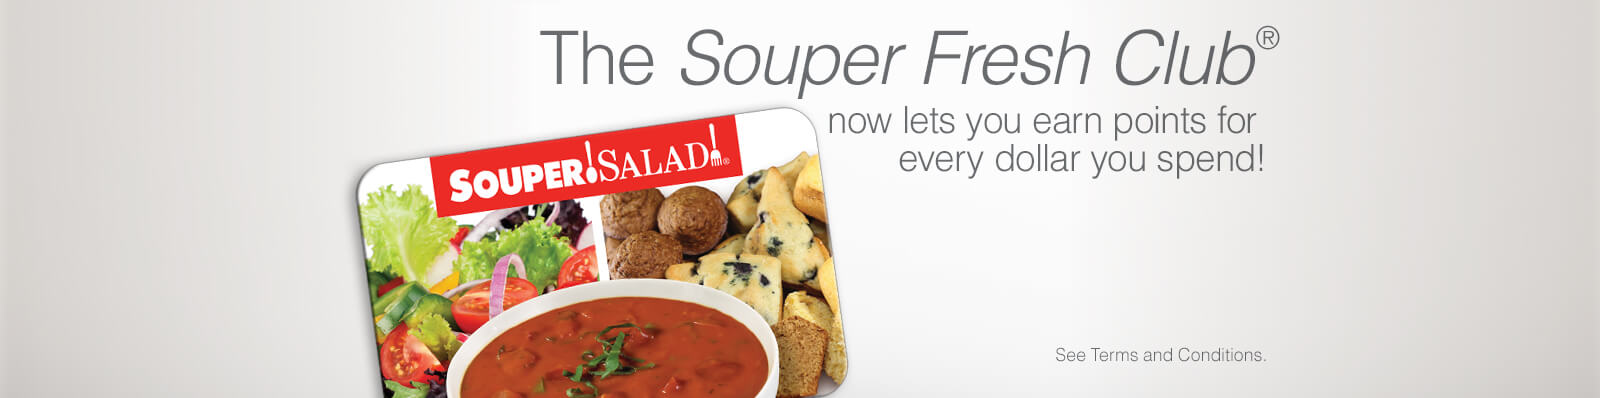 souper-salad-souper-fresh-club-earn-points-mod32017-webslide